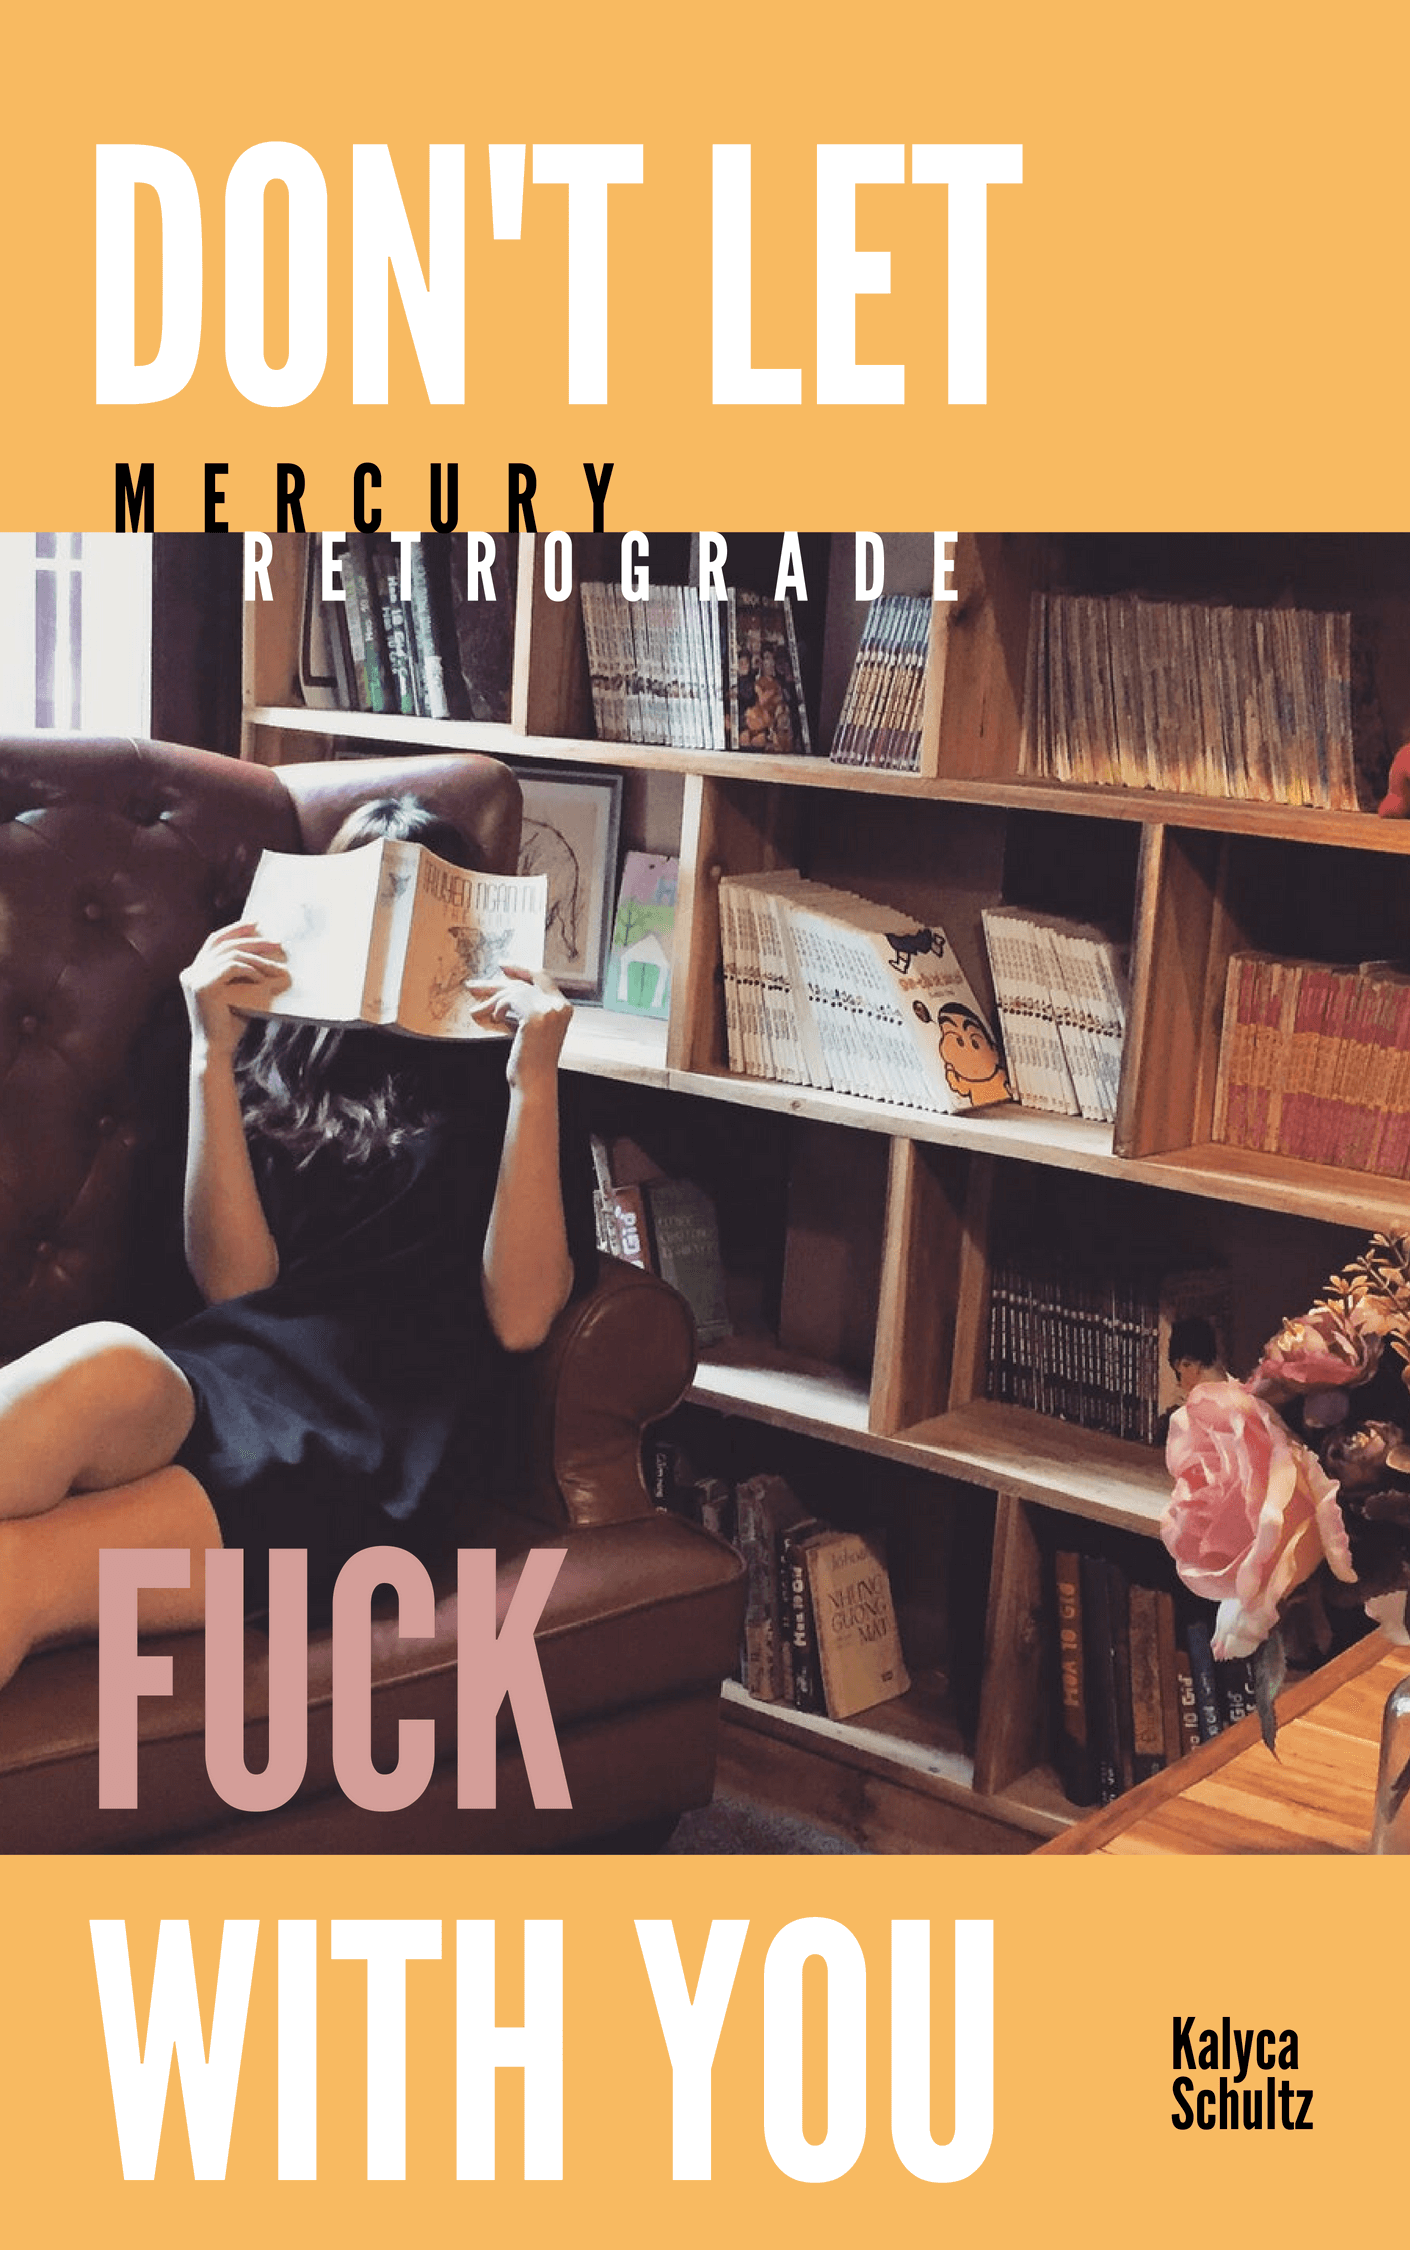 Don't Let Mercury Retrograde Fuck with You eBook: How to Never Worry about Mercury Retrograde Again